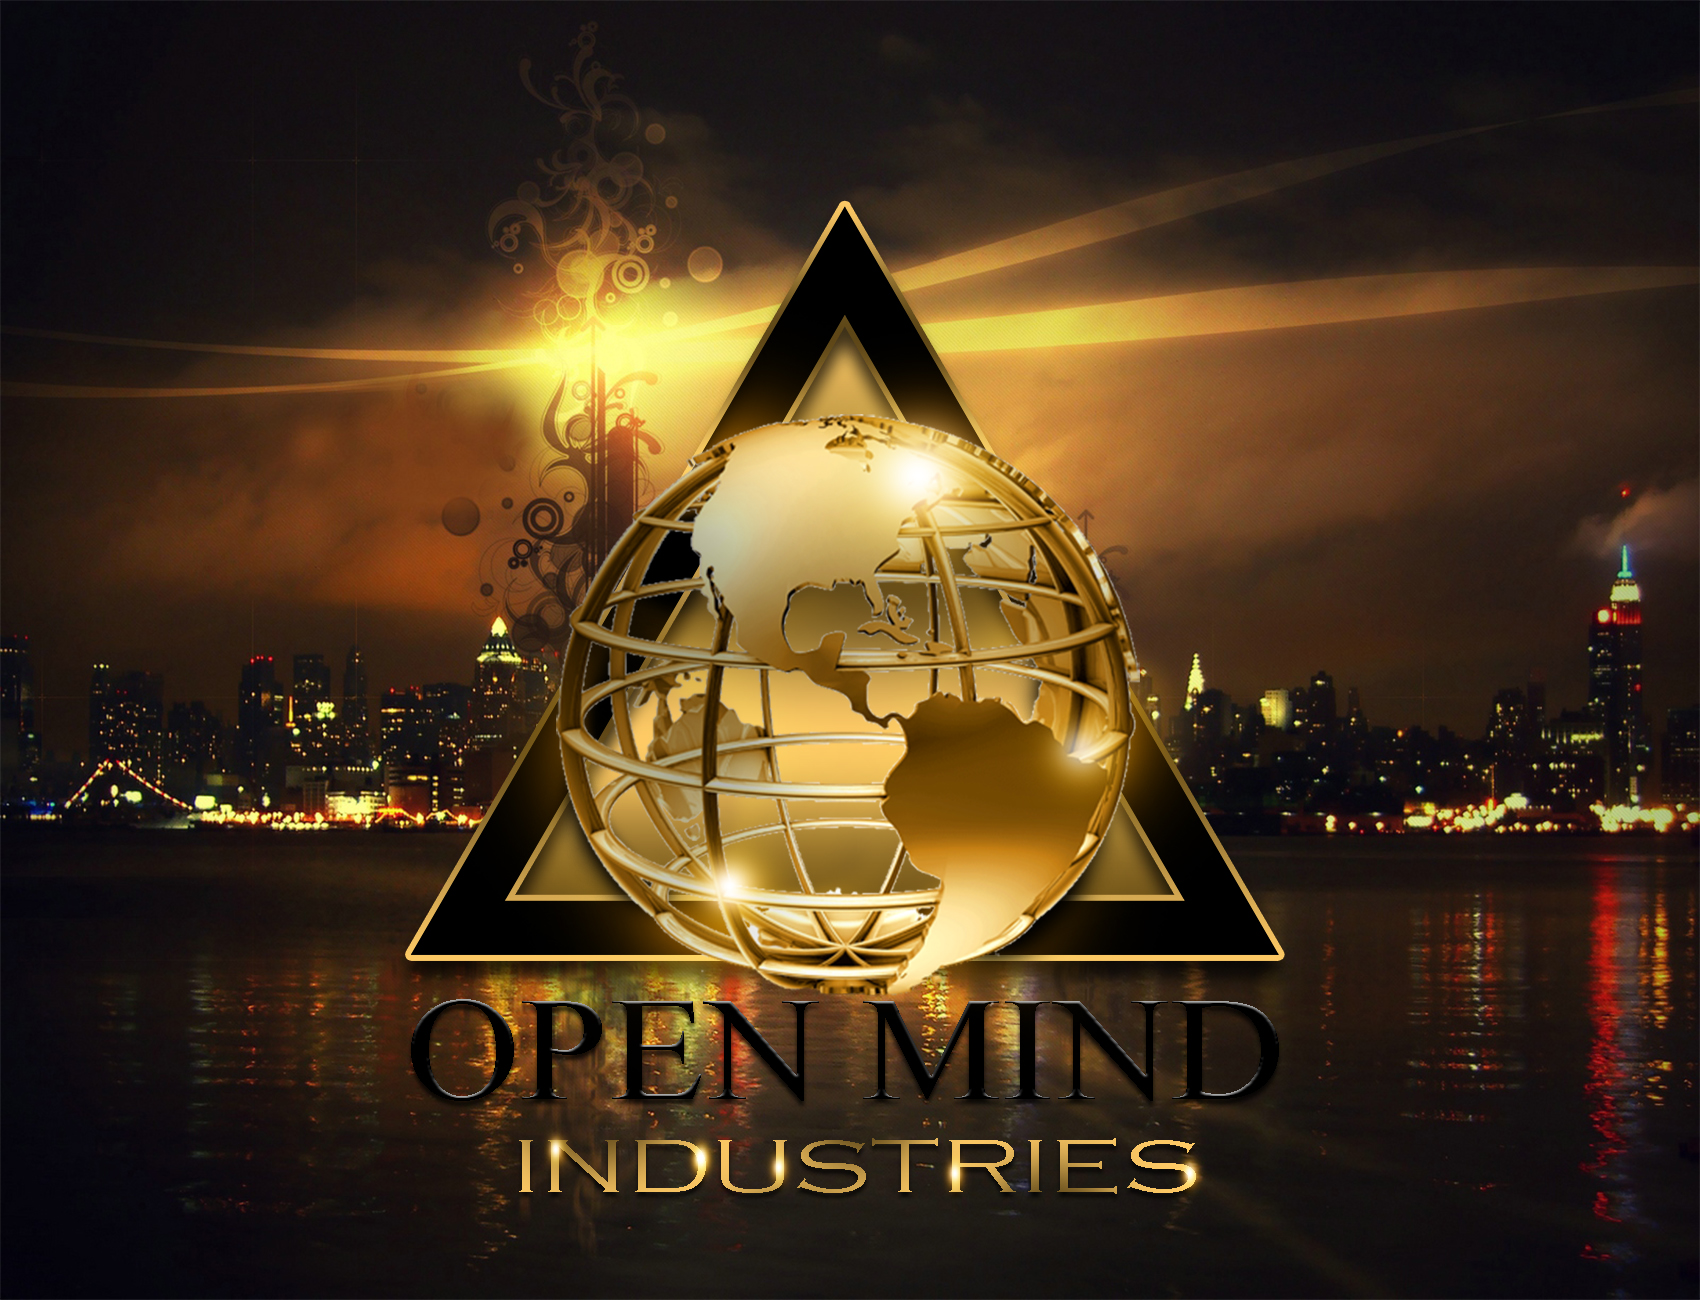 Open Mind Industries